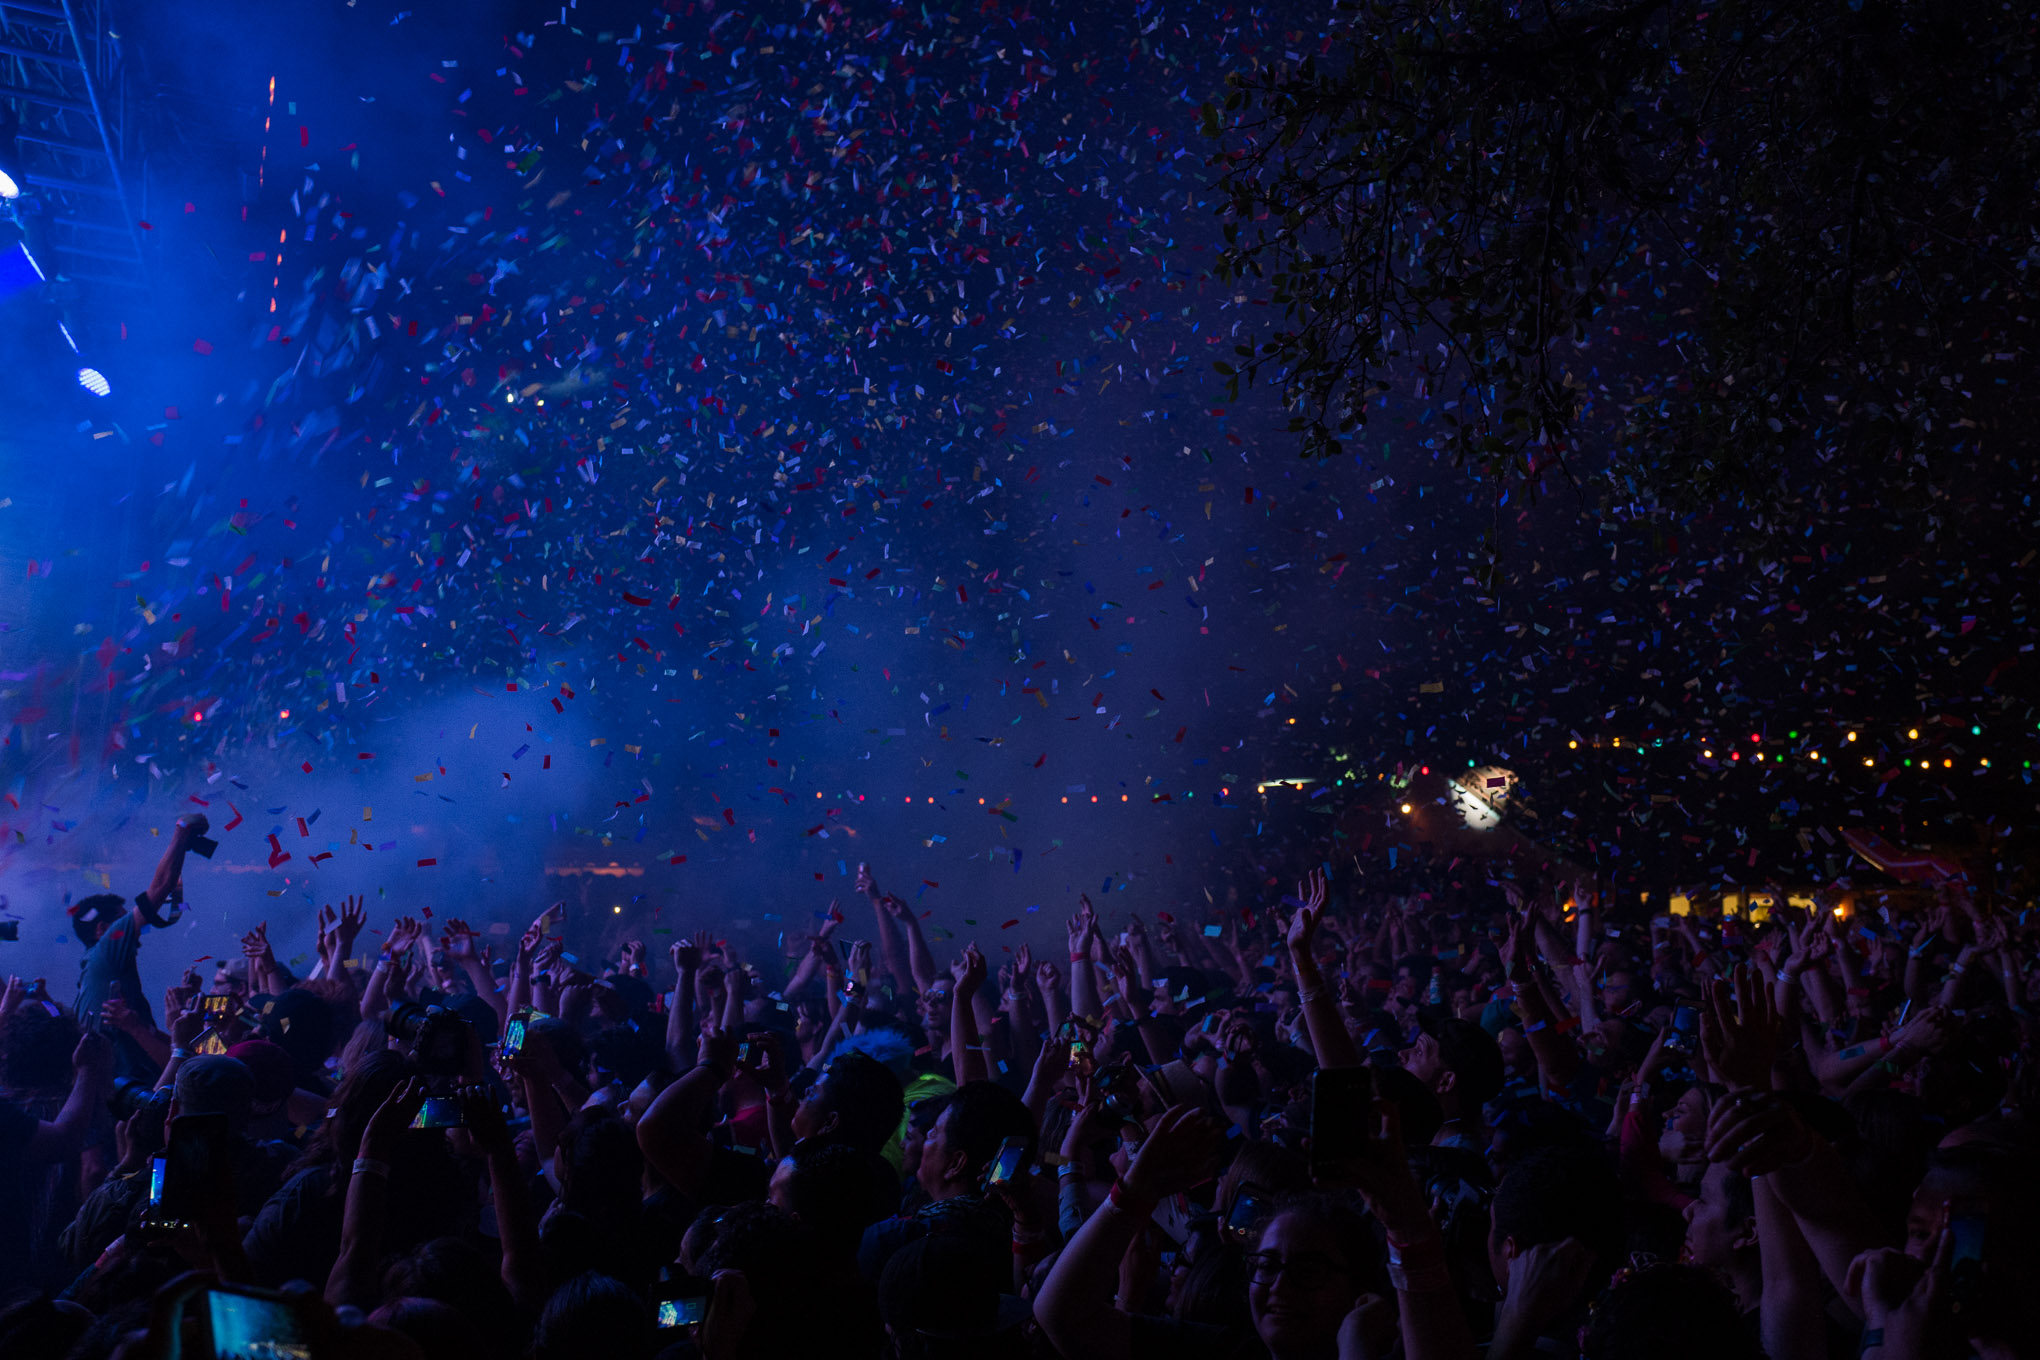 Masses of people lift their arms as confetti rains upon them. Photo by Scott Ball.